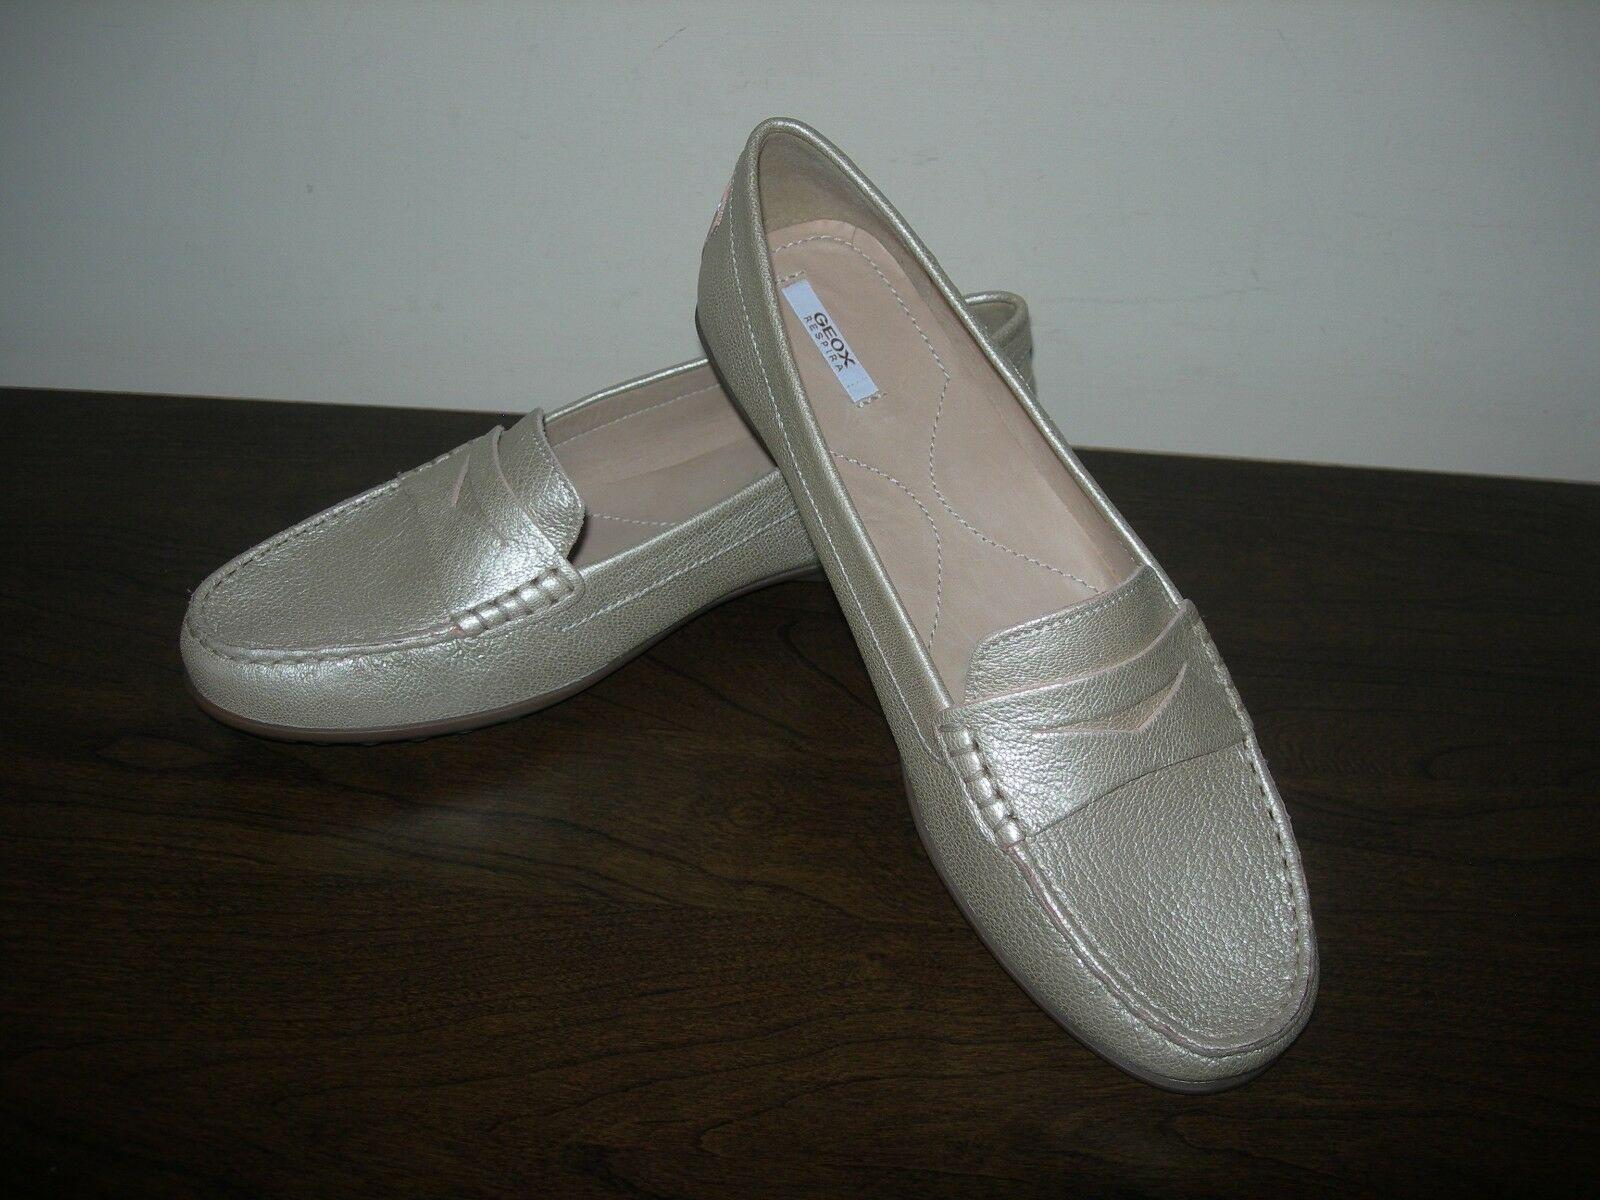 GEOX RESPIRA donna sautope SLIP ON FLATS CHAMPAGNE oroEN LEATHER EU 41